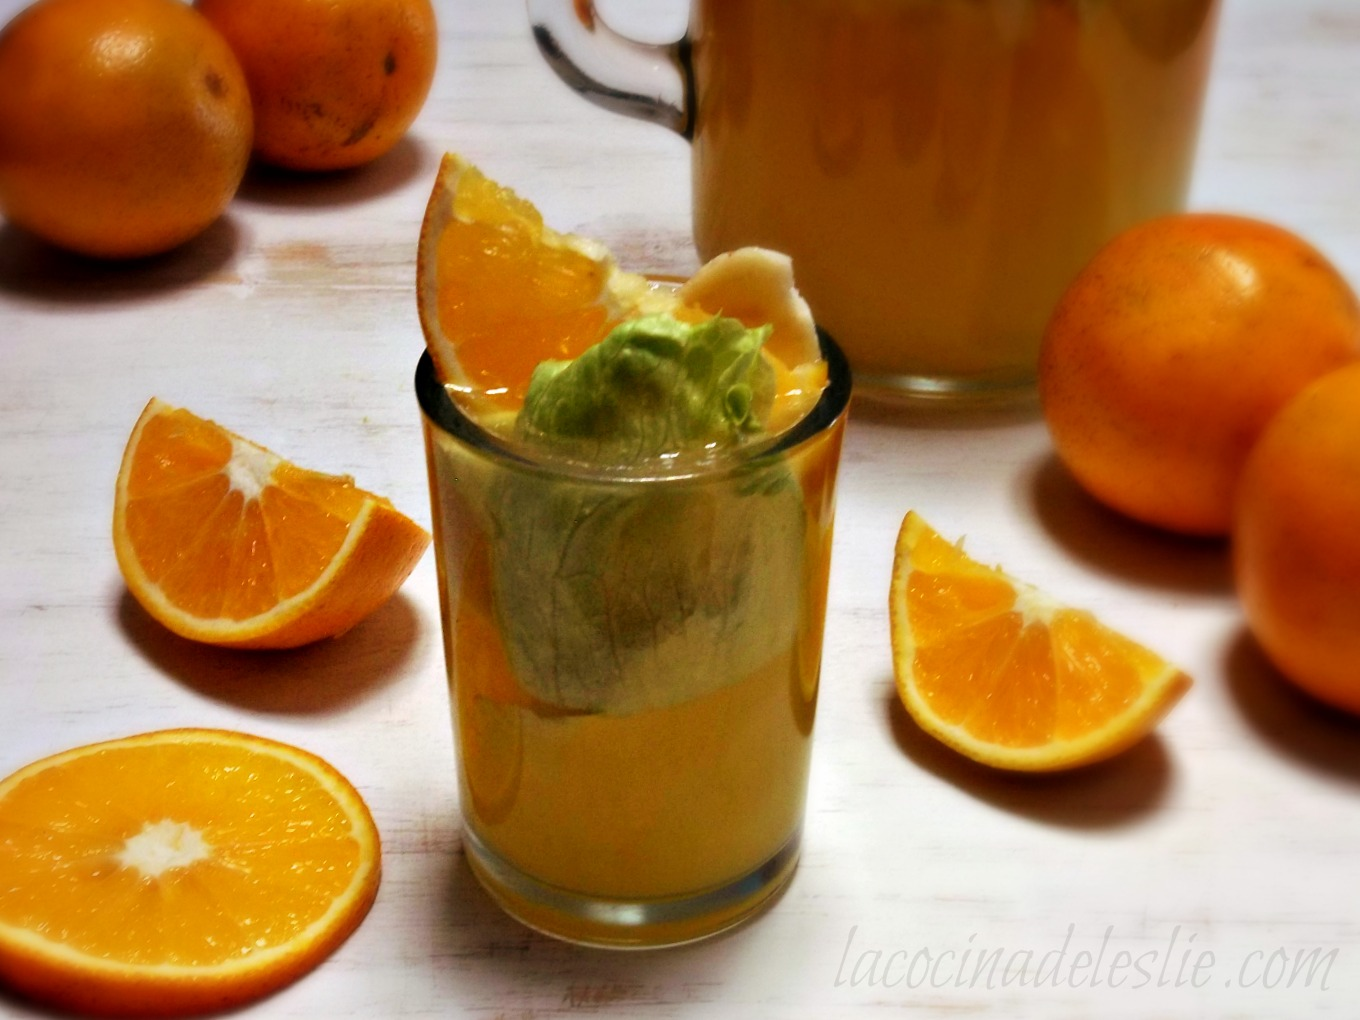 Orange Banana Agua Fresca with Lettuce - lacocinadeleslie.com